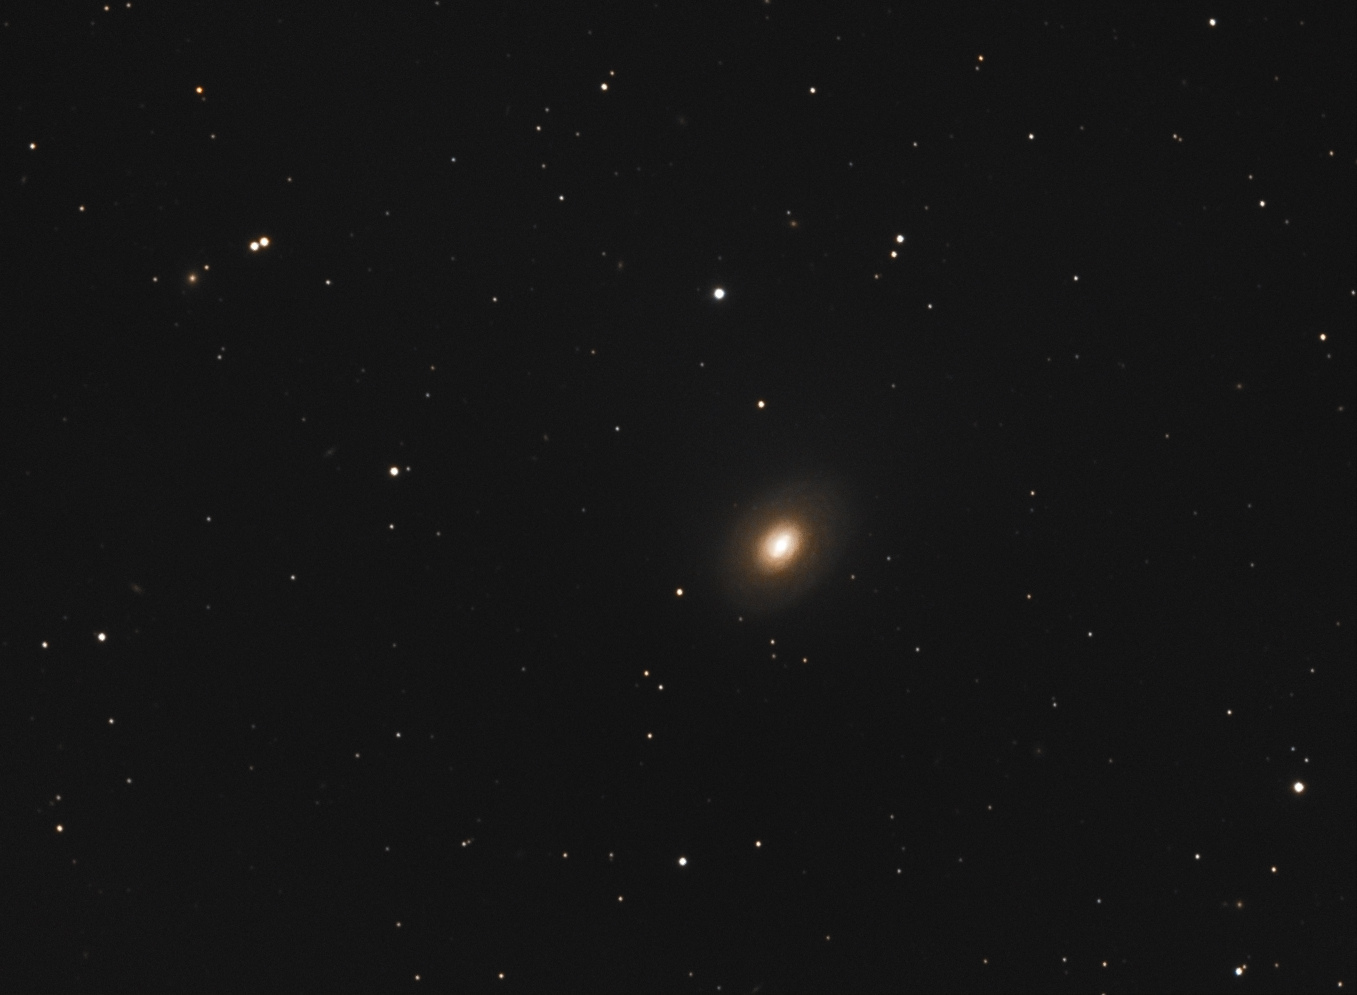 ngc4699-C8-red0.5-atik16hr-LRVB-SP